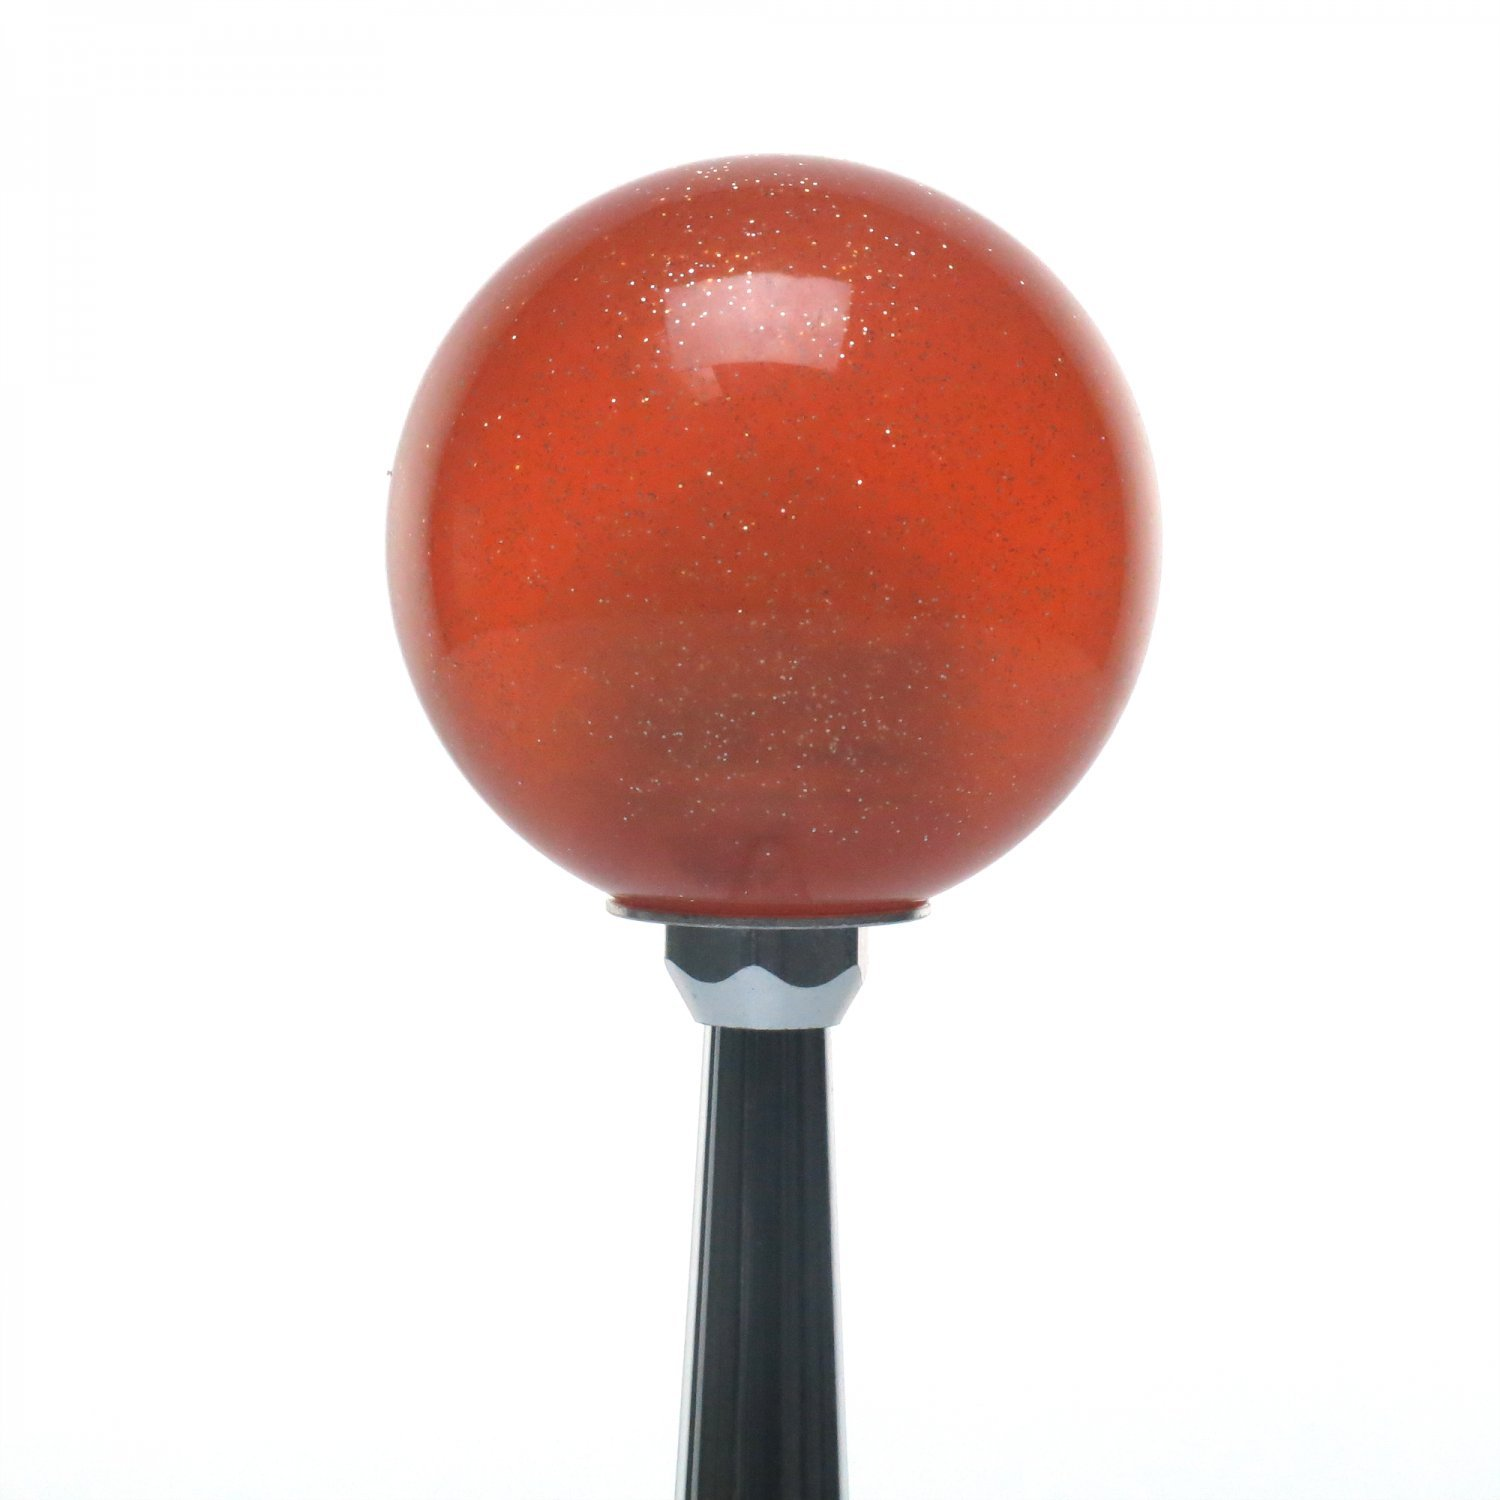 American Shifter 285541 Shift Knob Red VW Cog 1937 Orange Metal Flake with M16 x 1.5 Insert